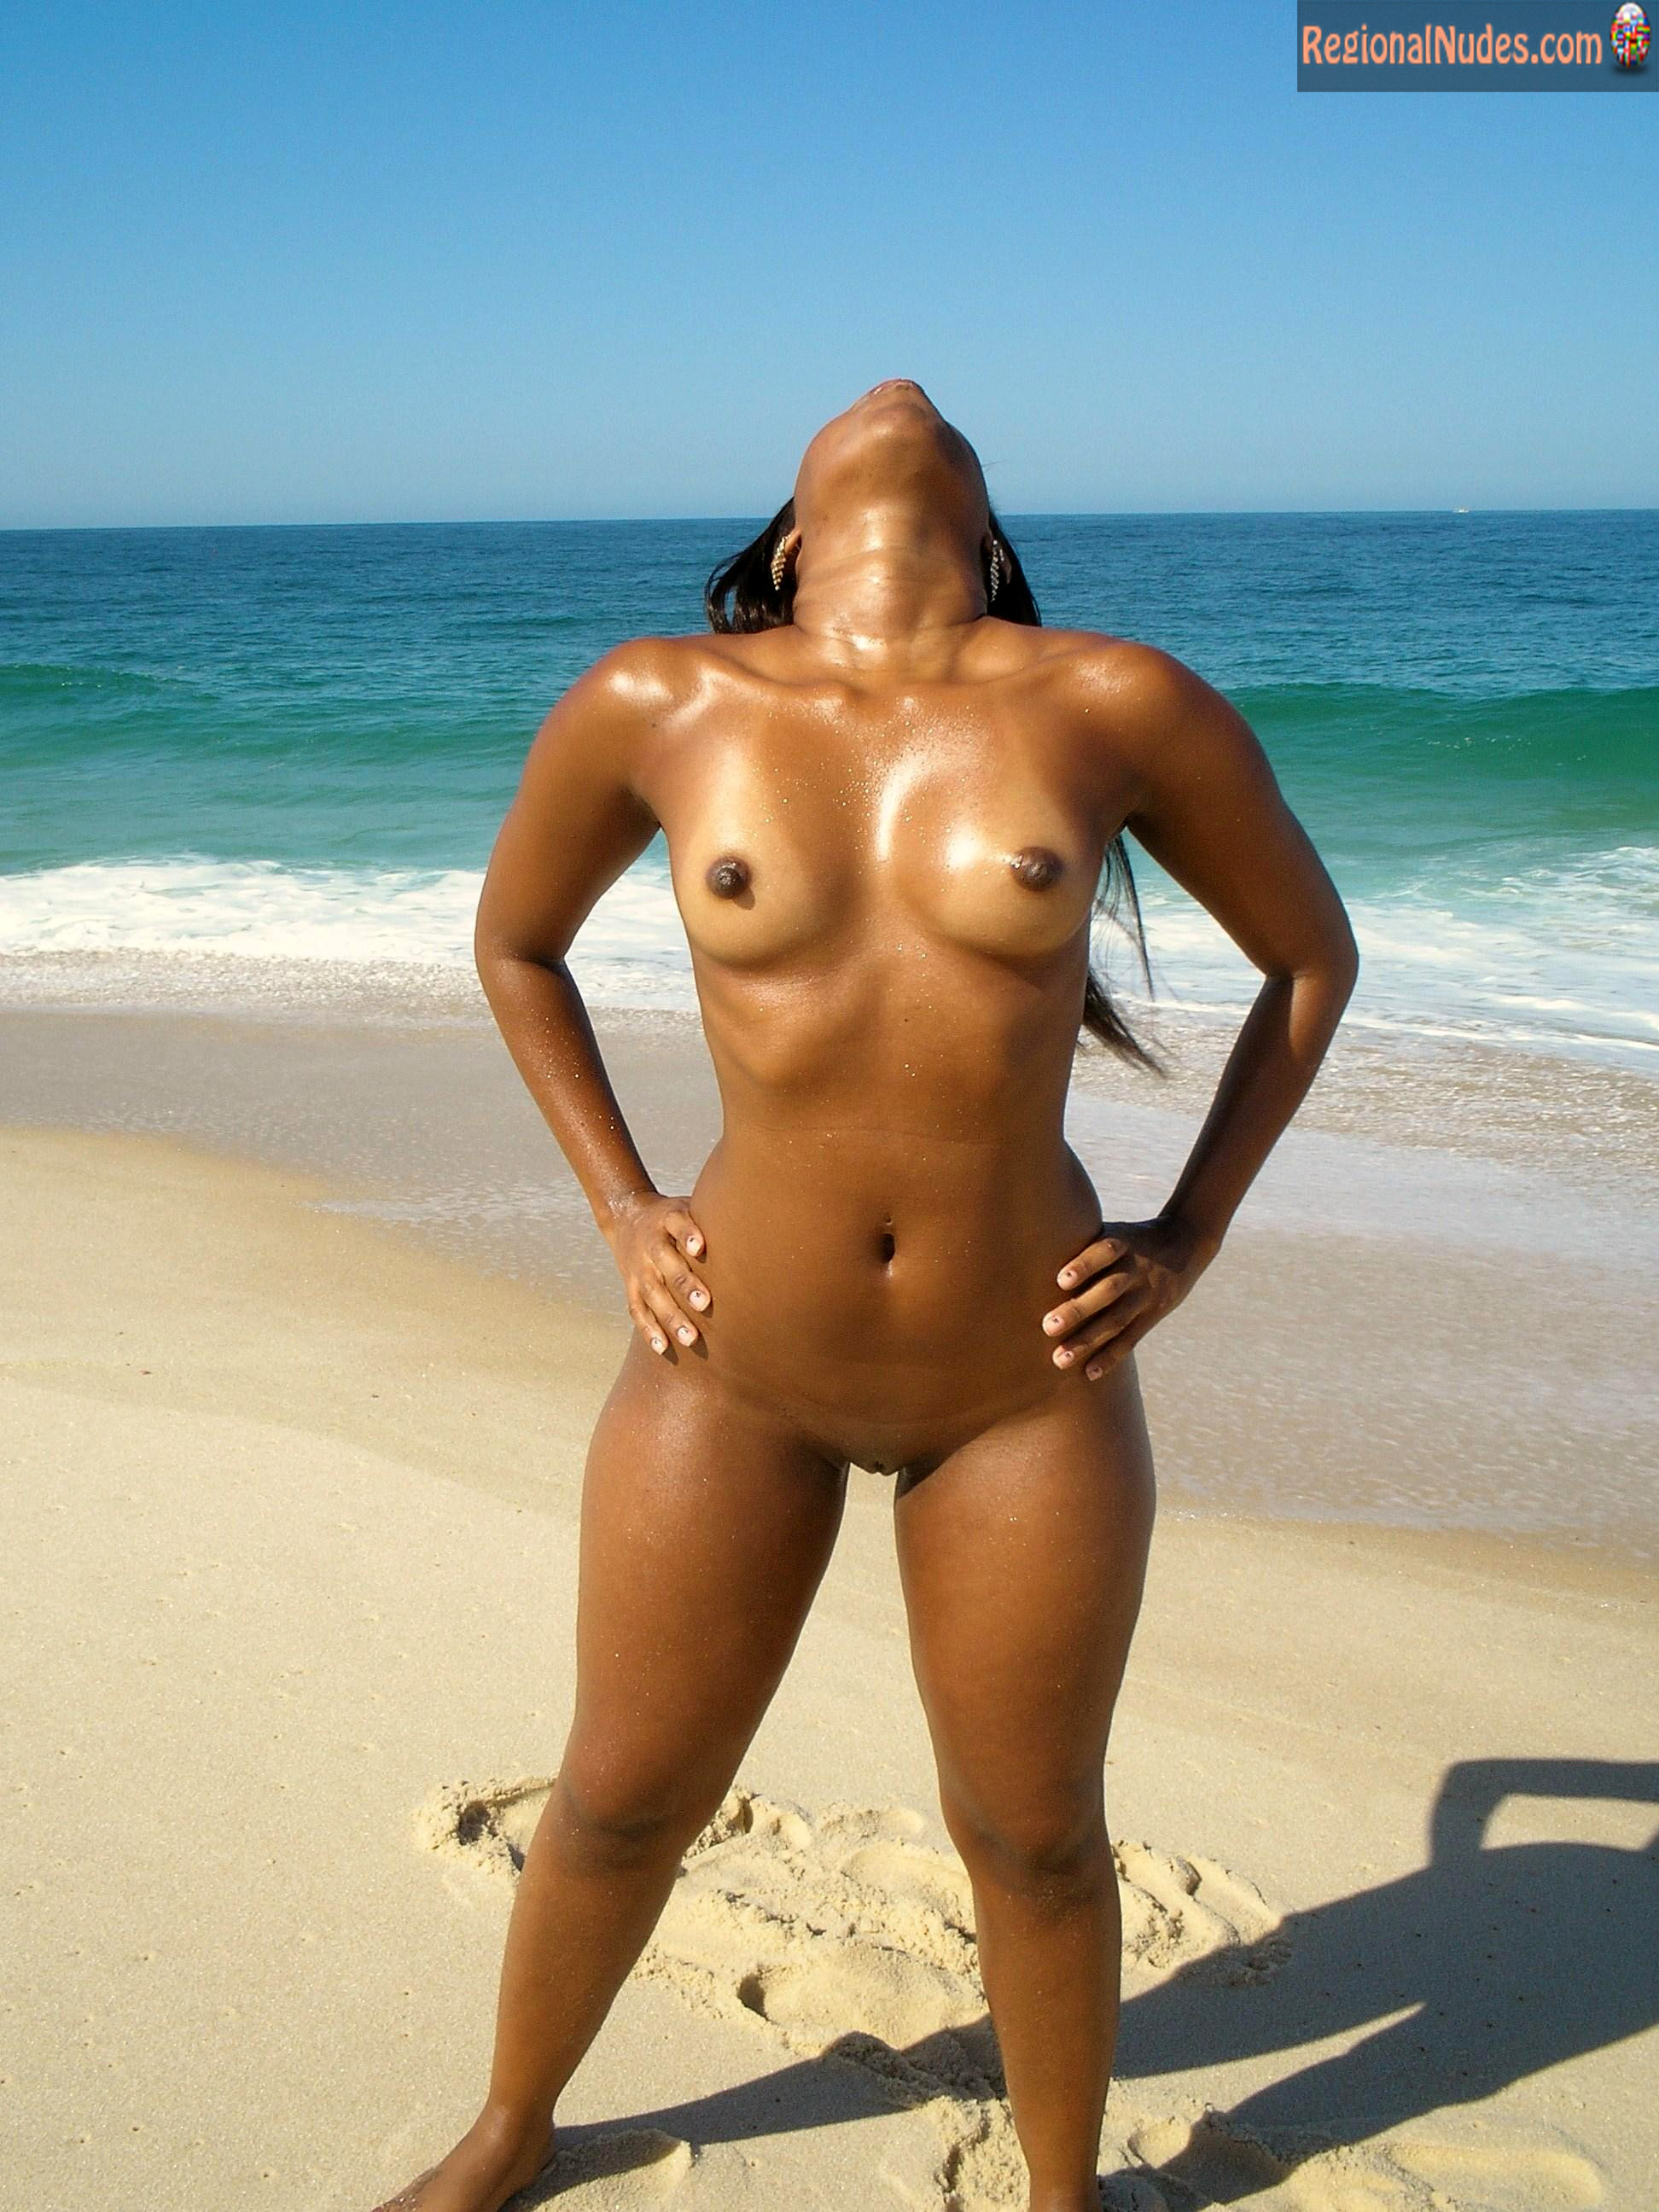 Agree, remarkable brazil nude beach pussy have